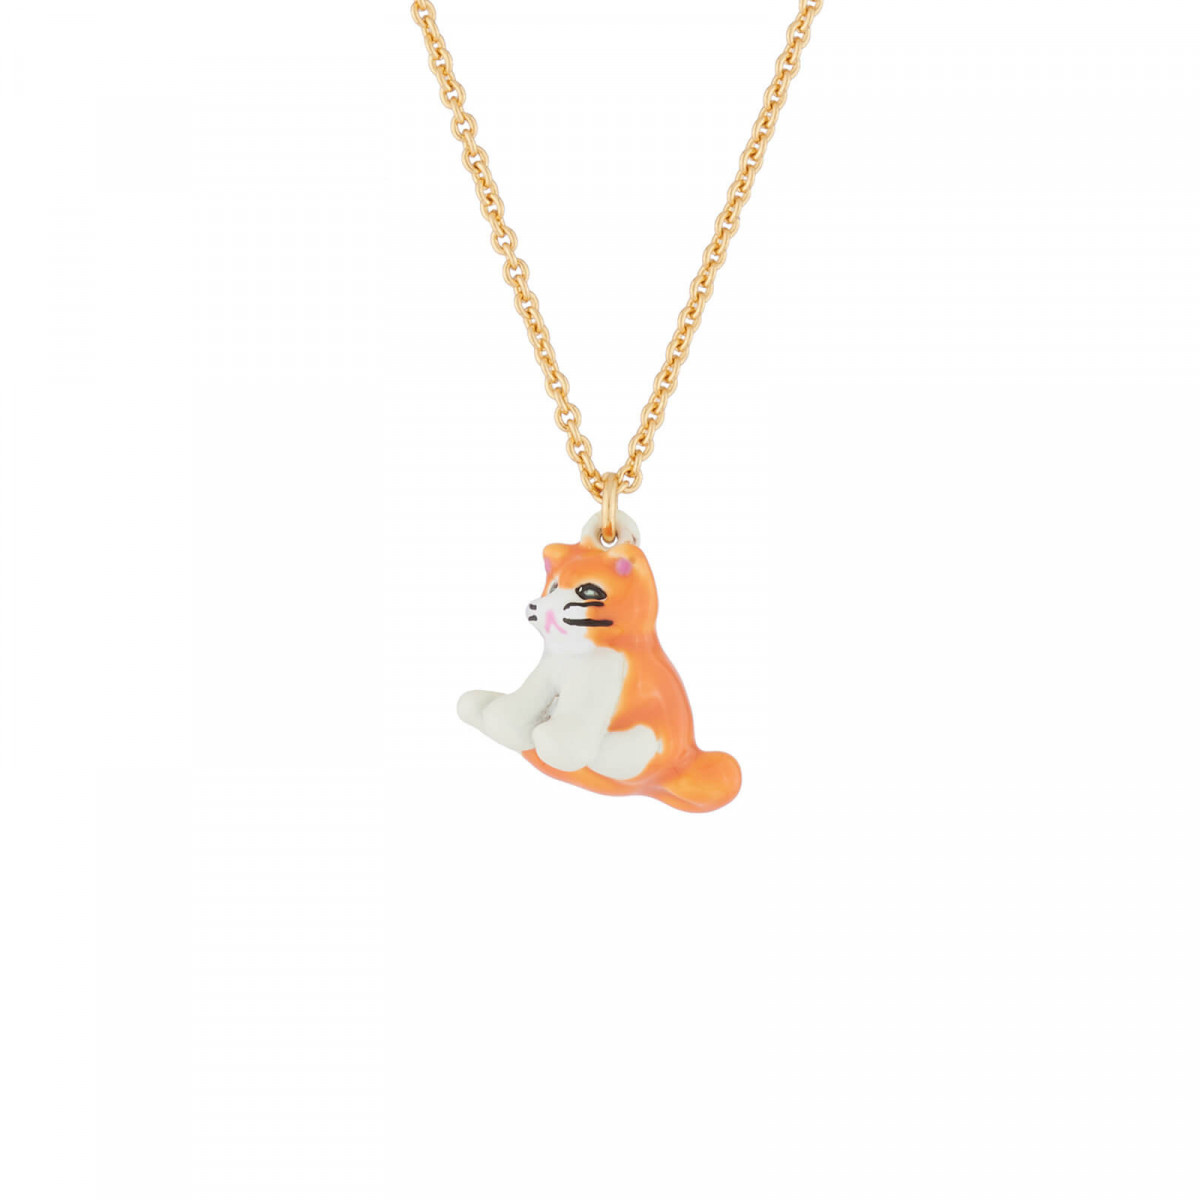 Colliers Collier Pendentif Chat